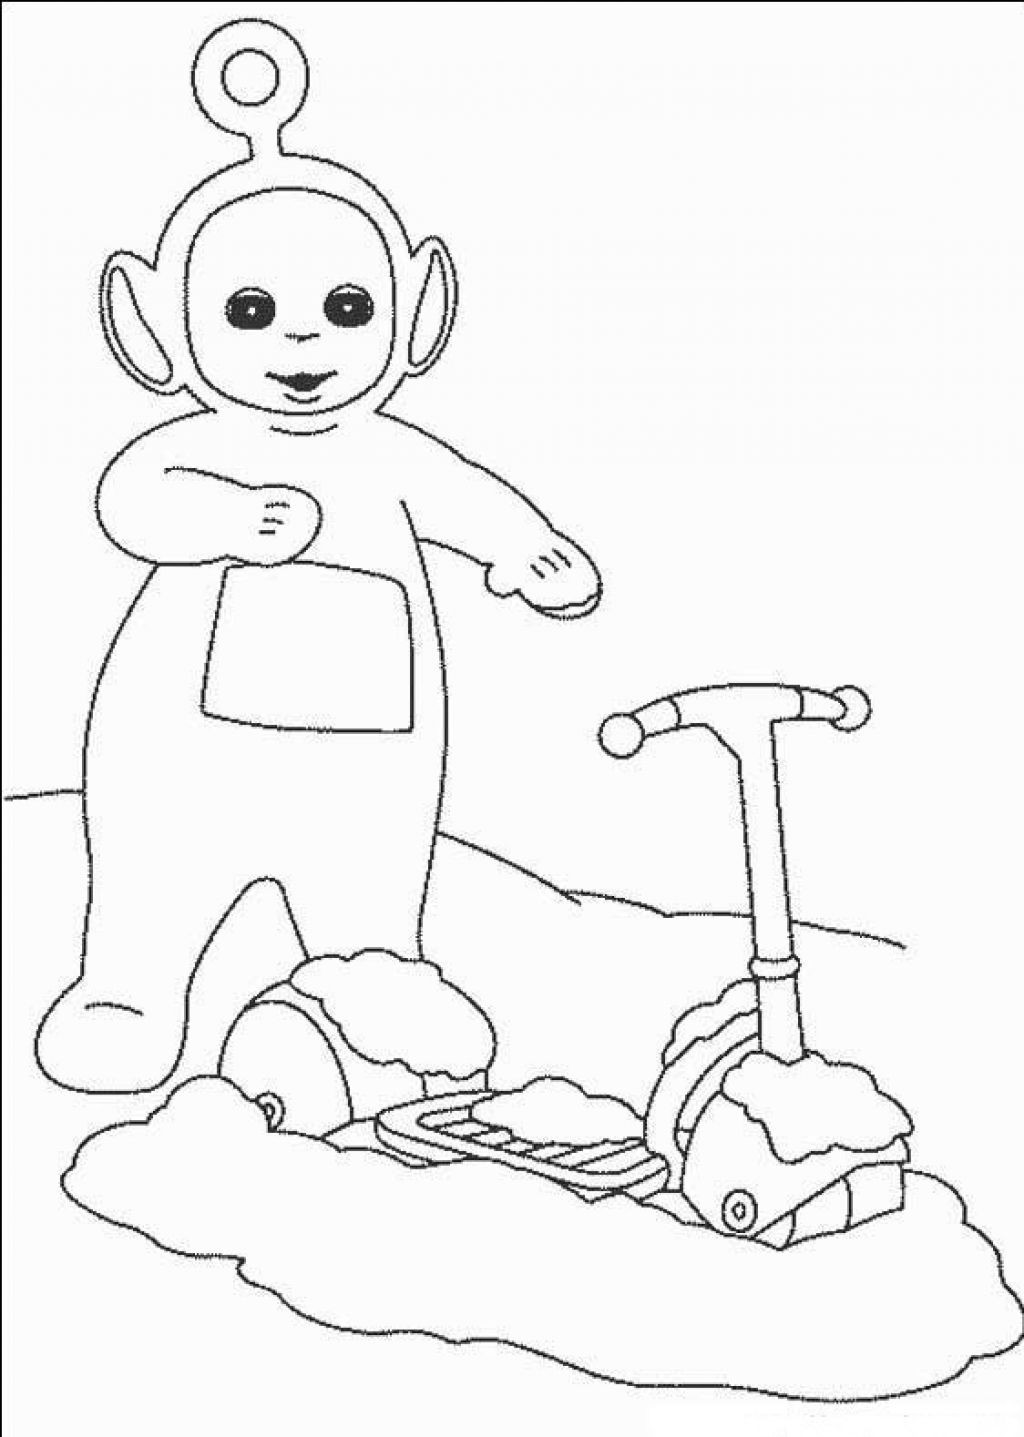 Teletubbies Printable Coloring Pages  Free Printable Teletubbies Coloring Pages For Kids